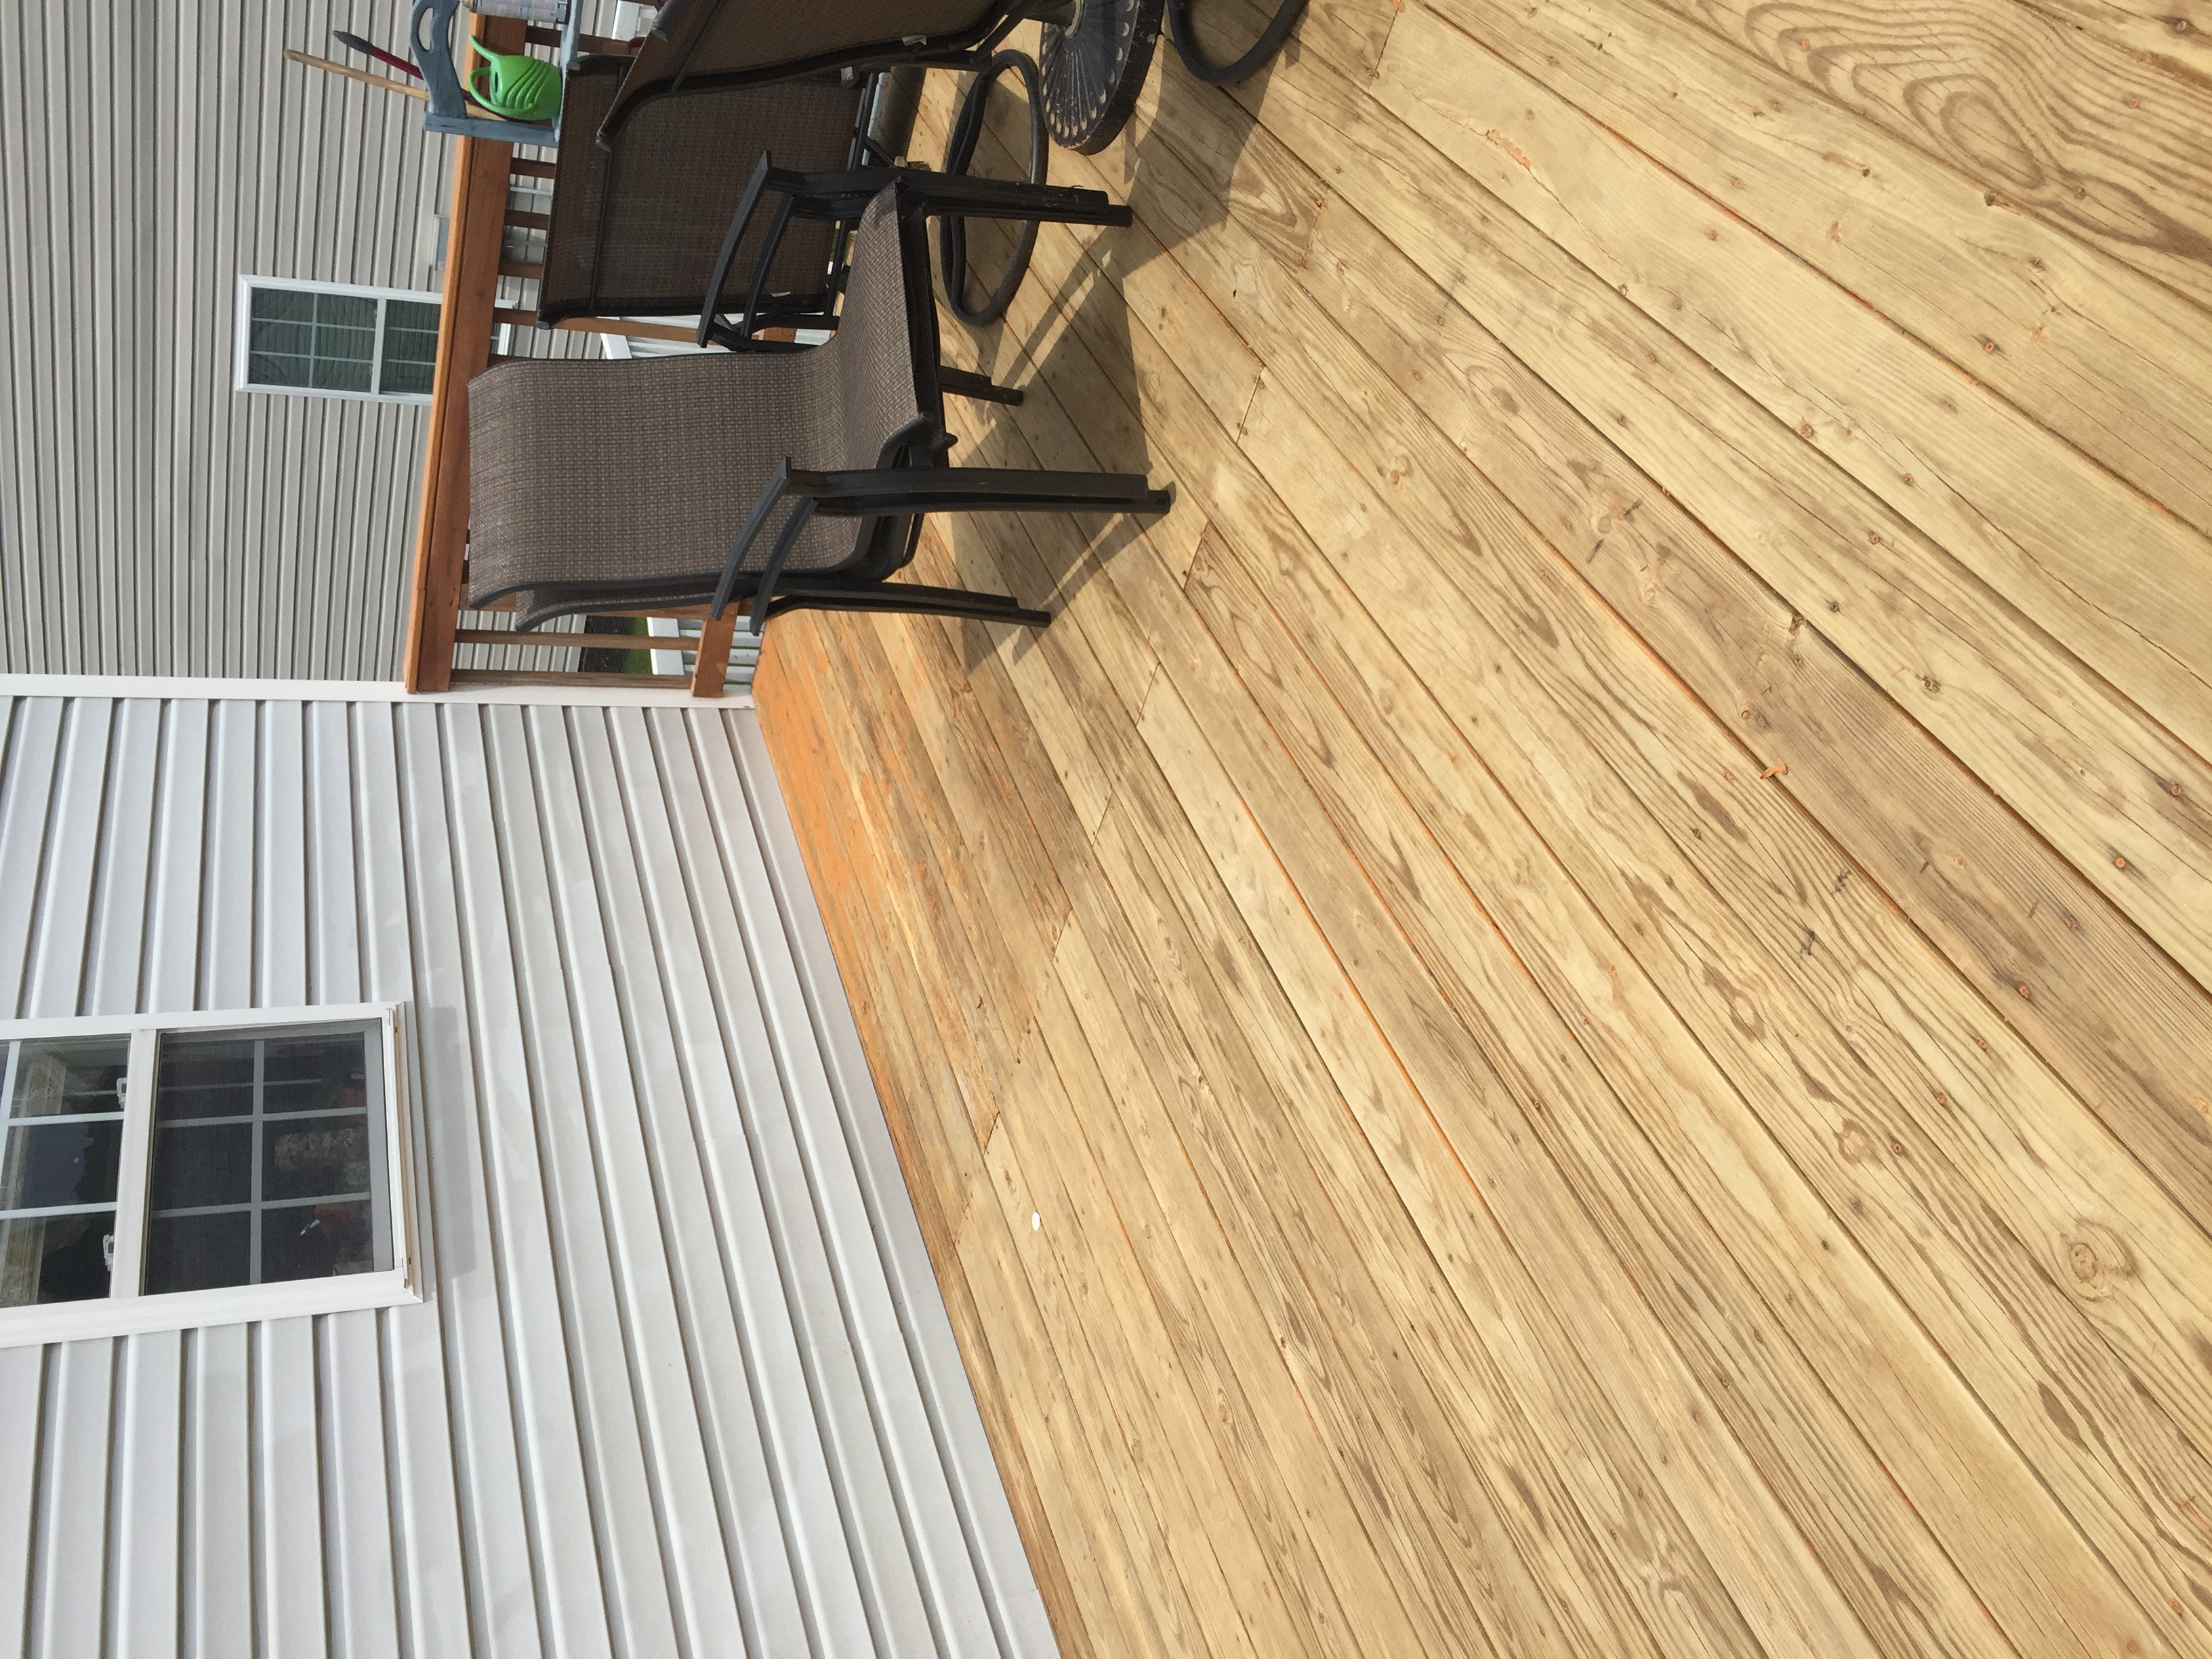 exotic hardwood flooring toronto of best stain for an old deck best deck stain reviews ratings for 8535eaf3 4745 4fd7 9329 389844374e0e